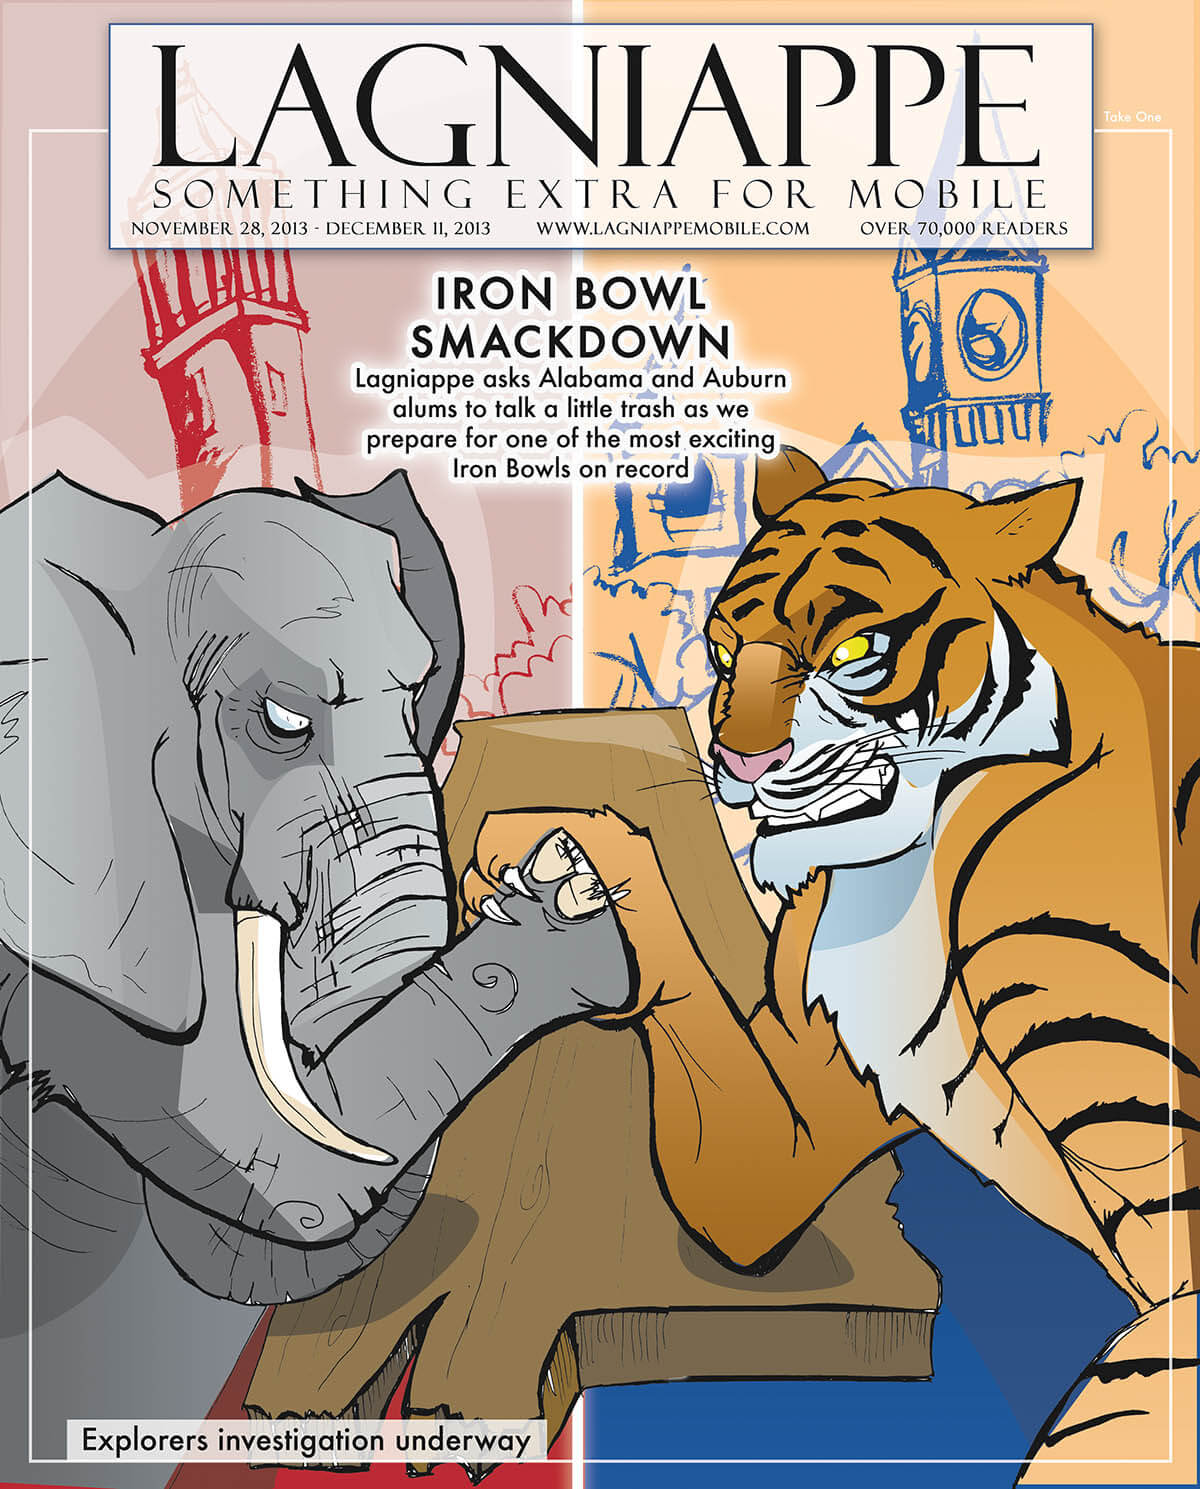 Lagniappe Nov. 28 – Dec. 11, 2013